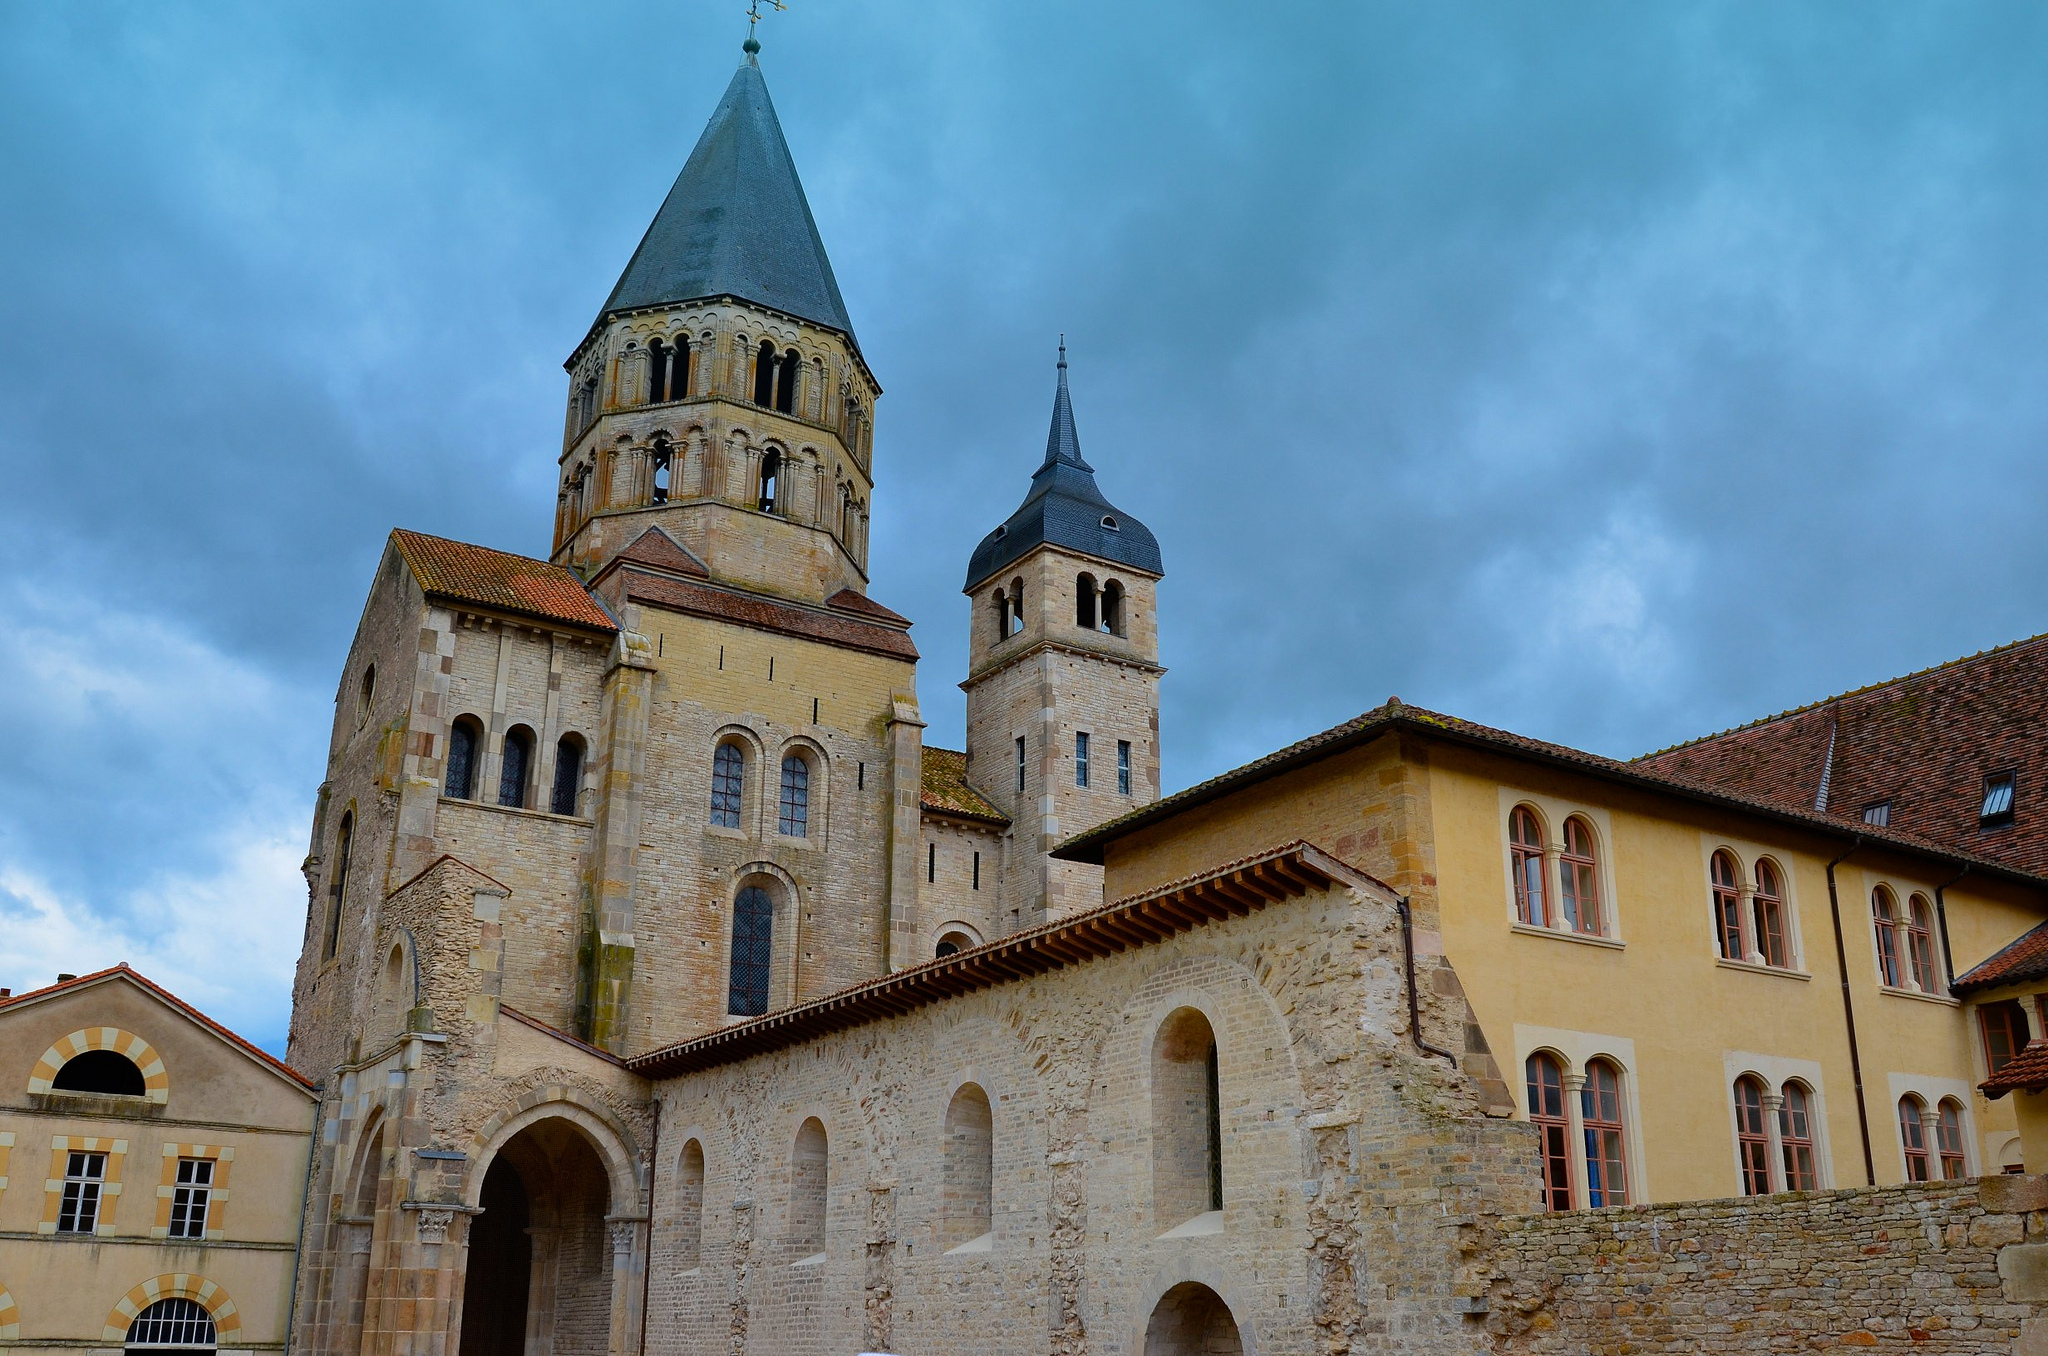 Abbey of Cluny